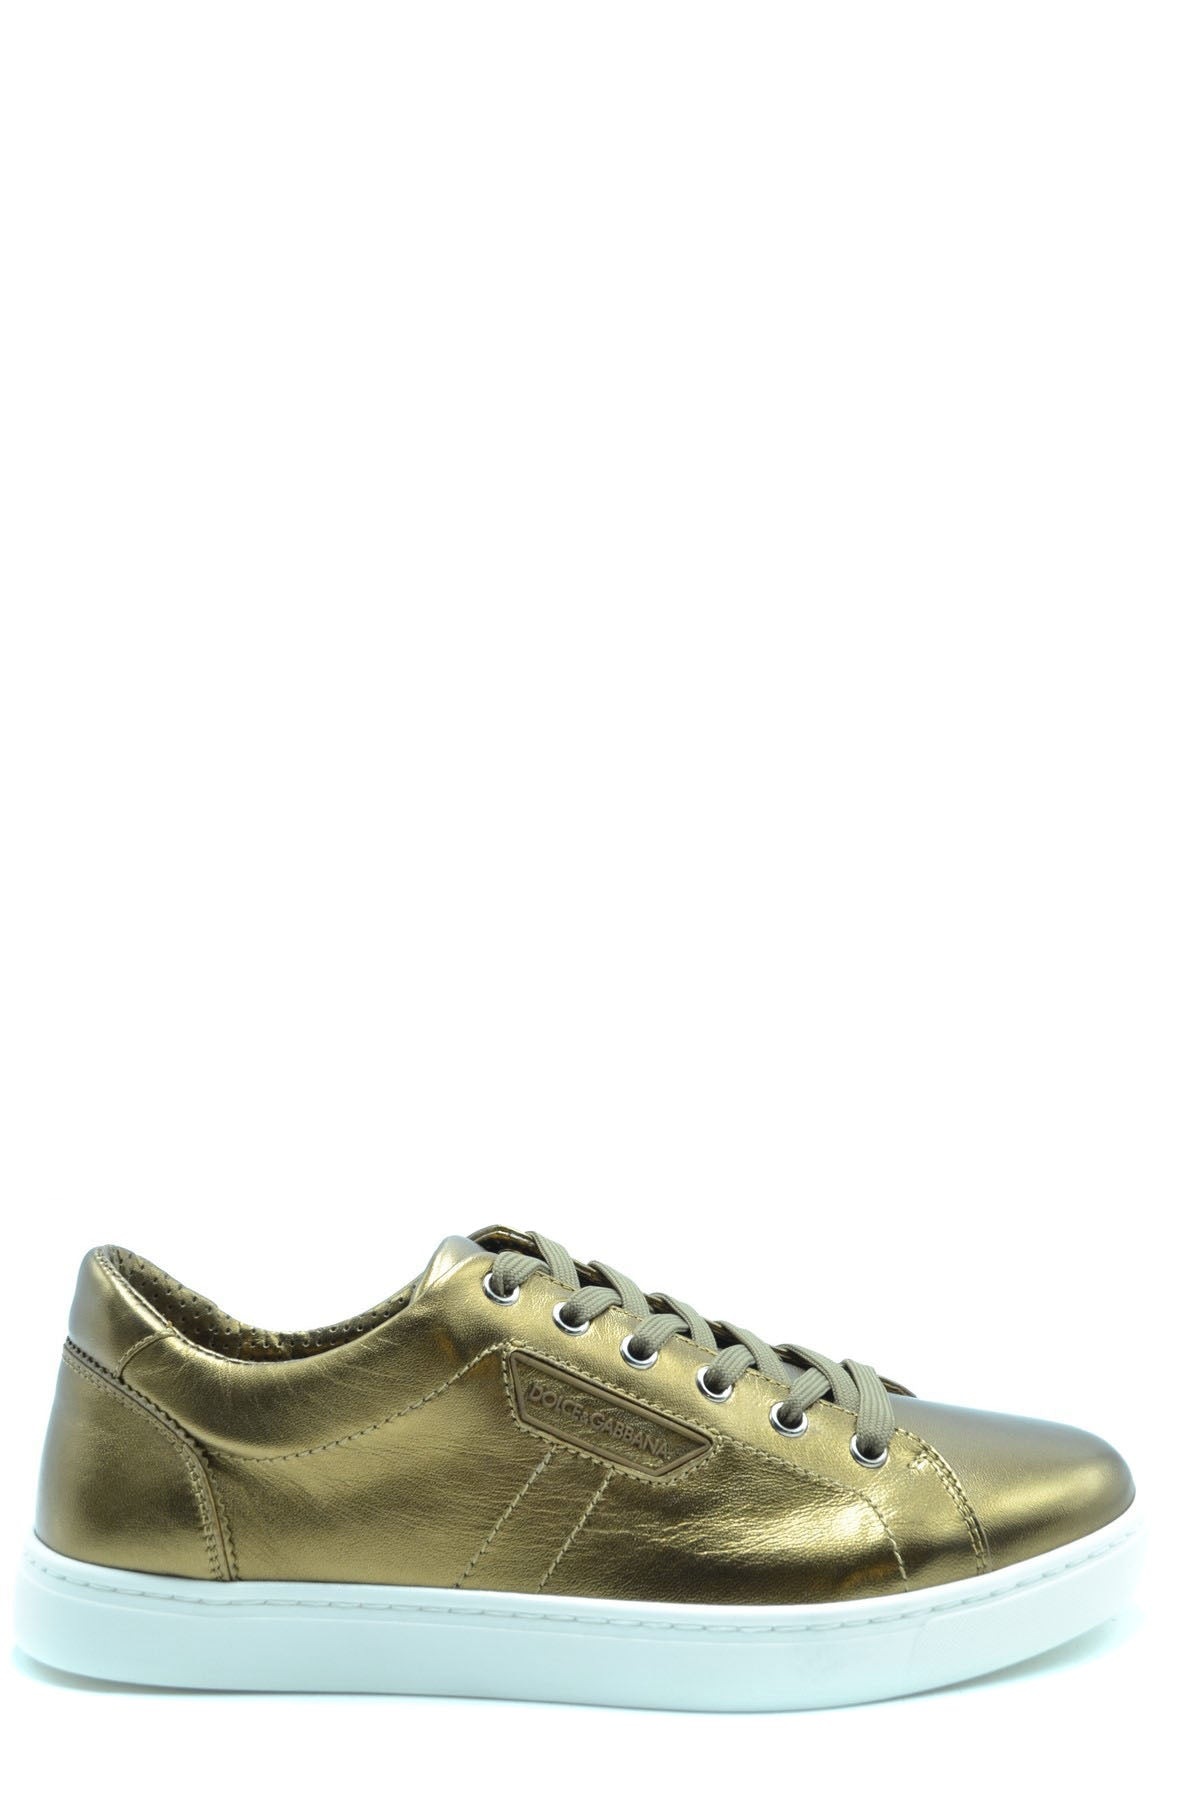 Shoes Dolce & Gabbana-Sports & Entertainment - Sneakers-40-Product Details Terms: New With LabelMain Color: GoldType Of Accessory: ShoesSeason: Fall / WinterMade In: ItalyGender: ManSize: EuComposition: Leather 100%Year: 2020Manufacturer Part Number: Cs1362 Ac955 89900-Keyomi-Sook